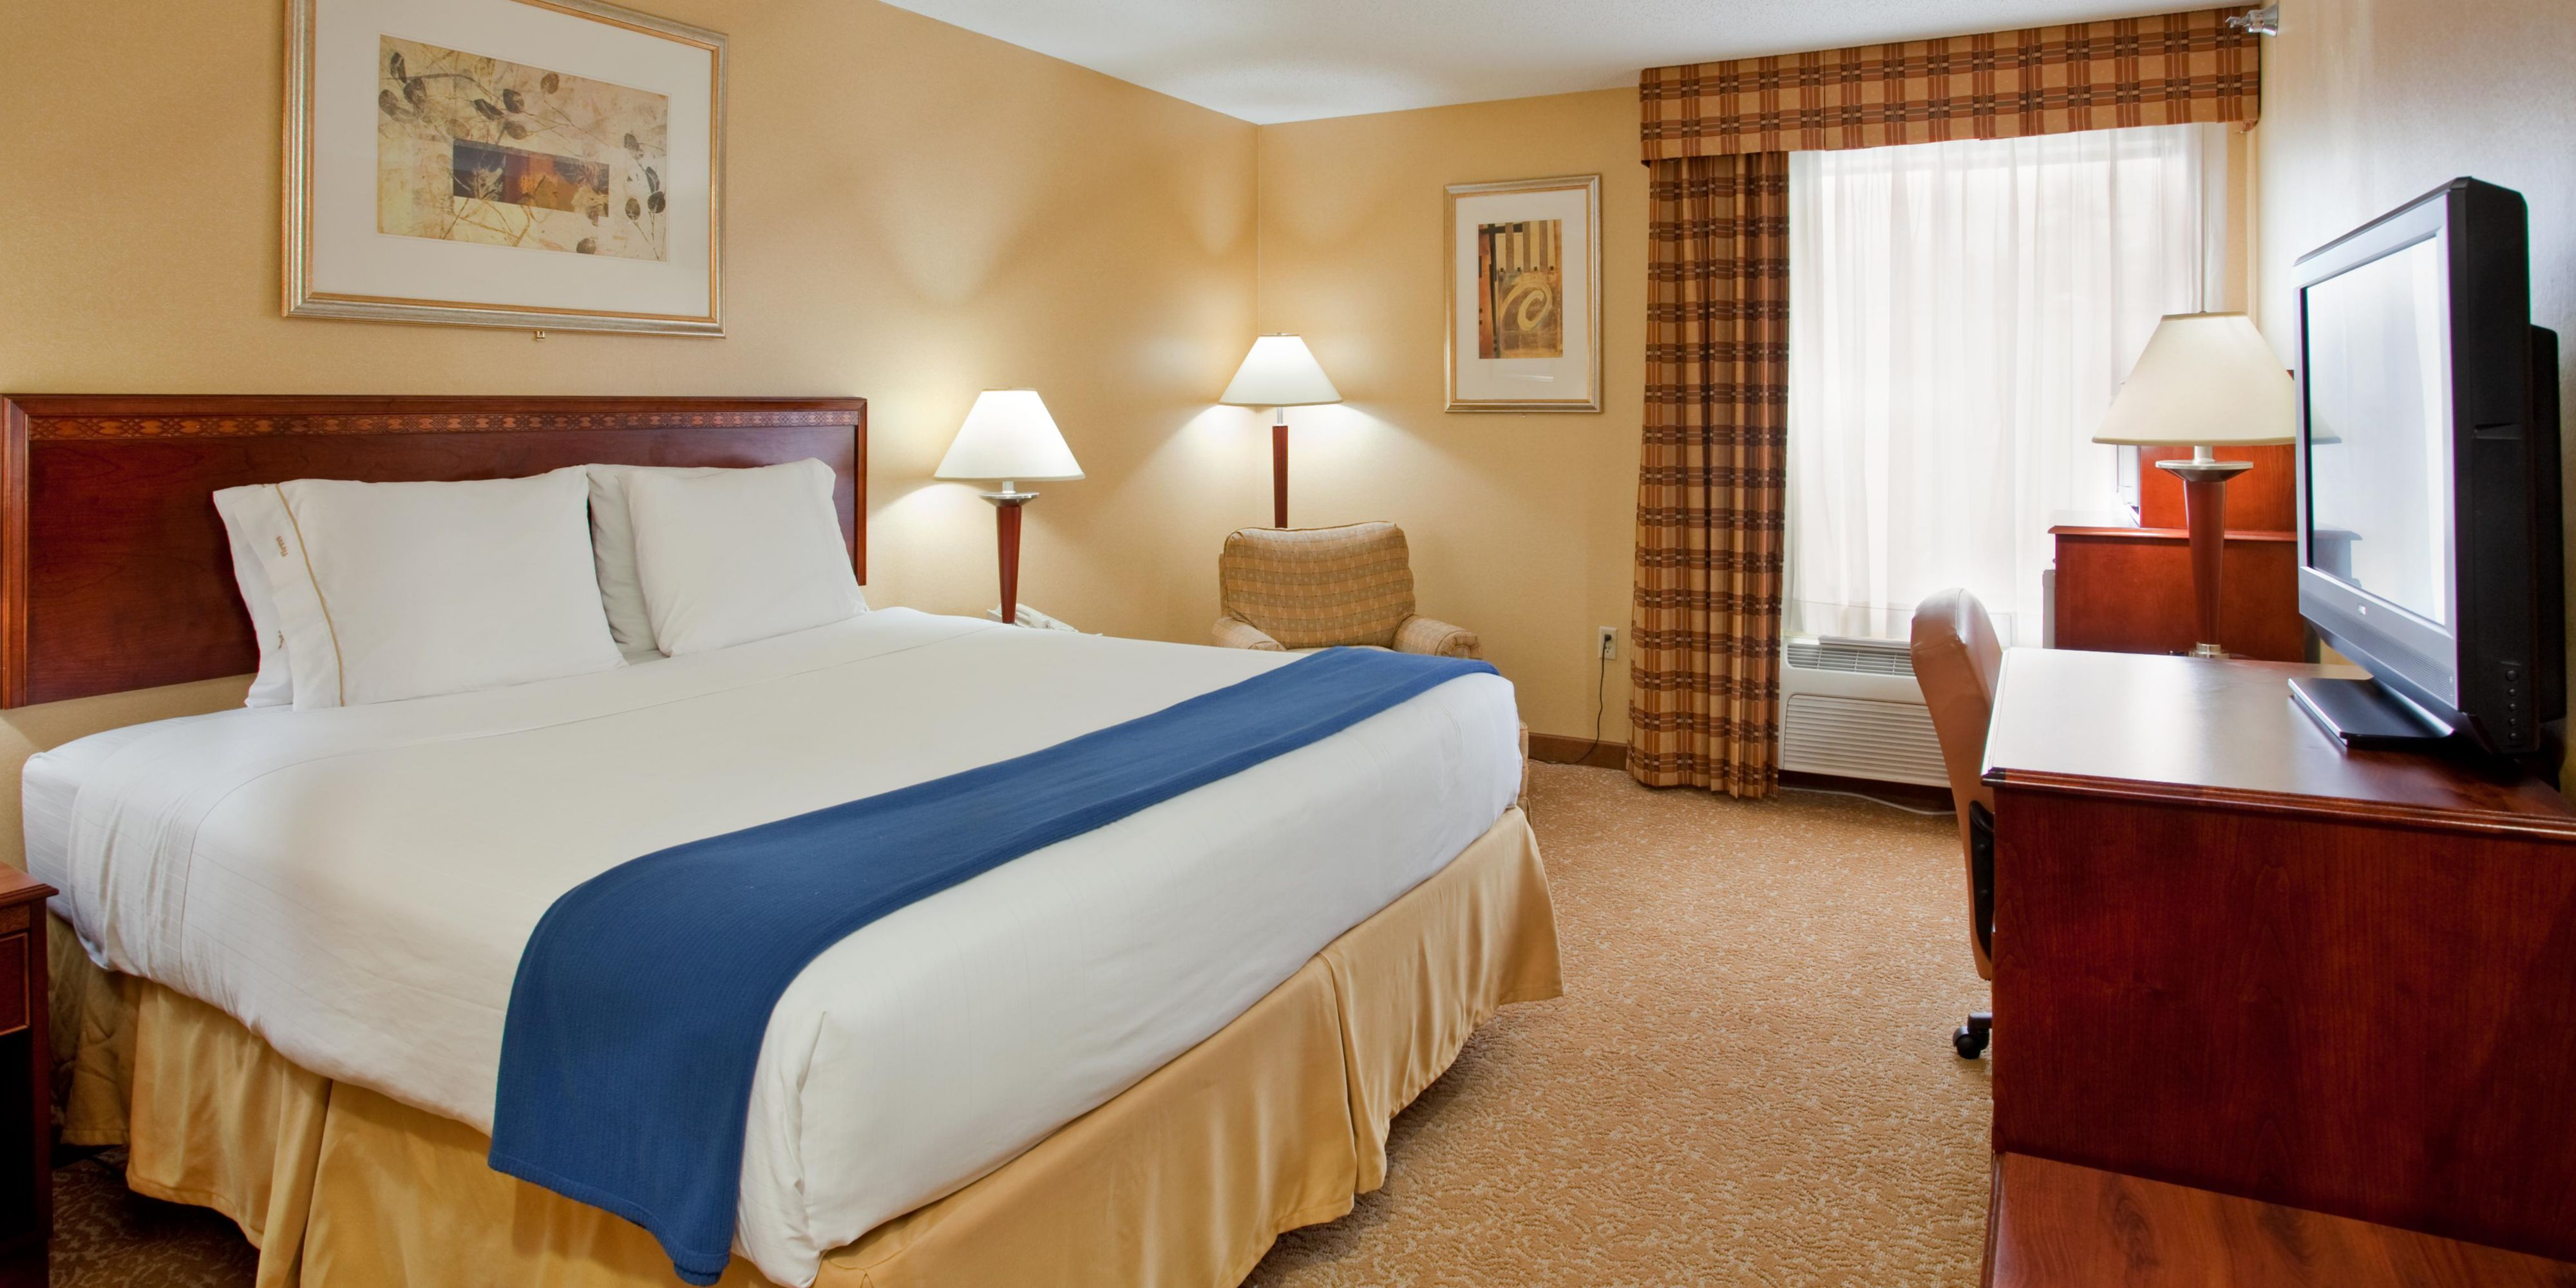 Holiday Inn Express And Suites Fenton 2533286226 2x1